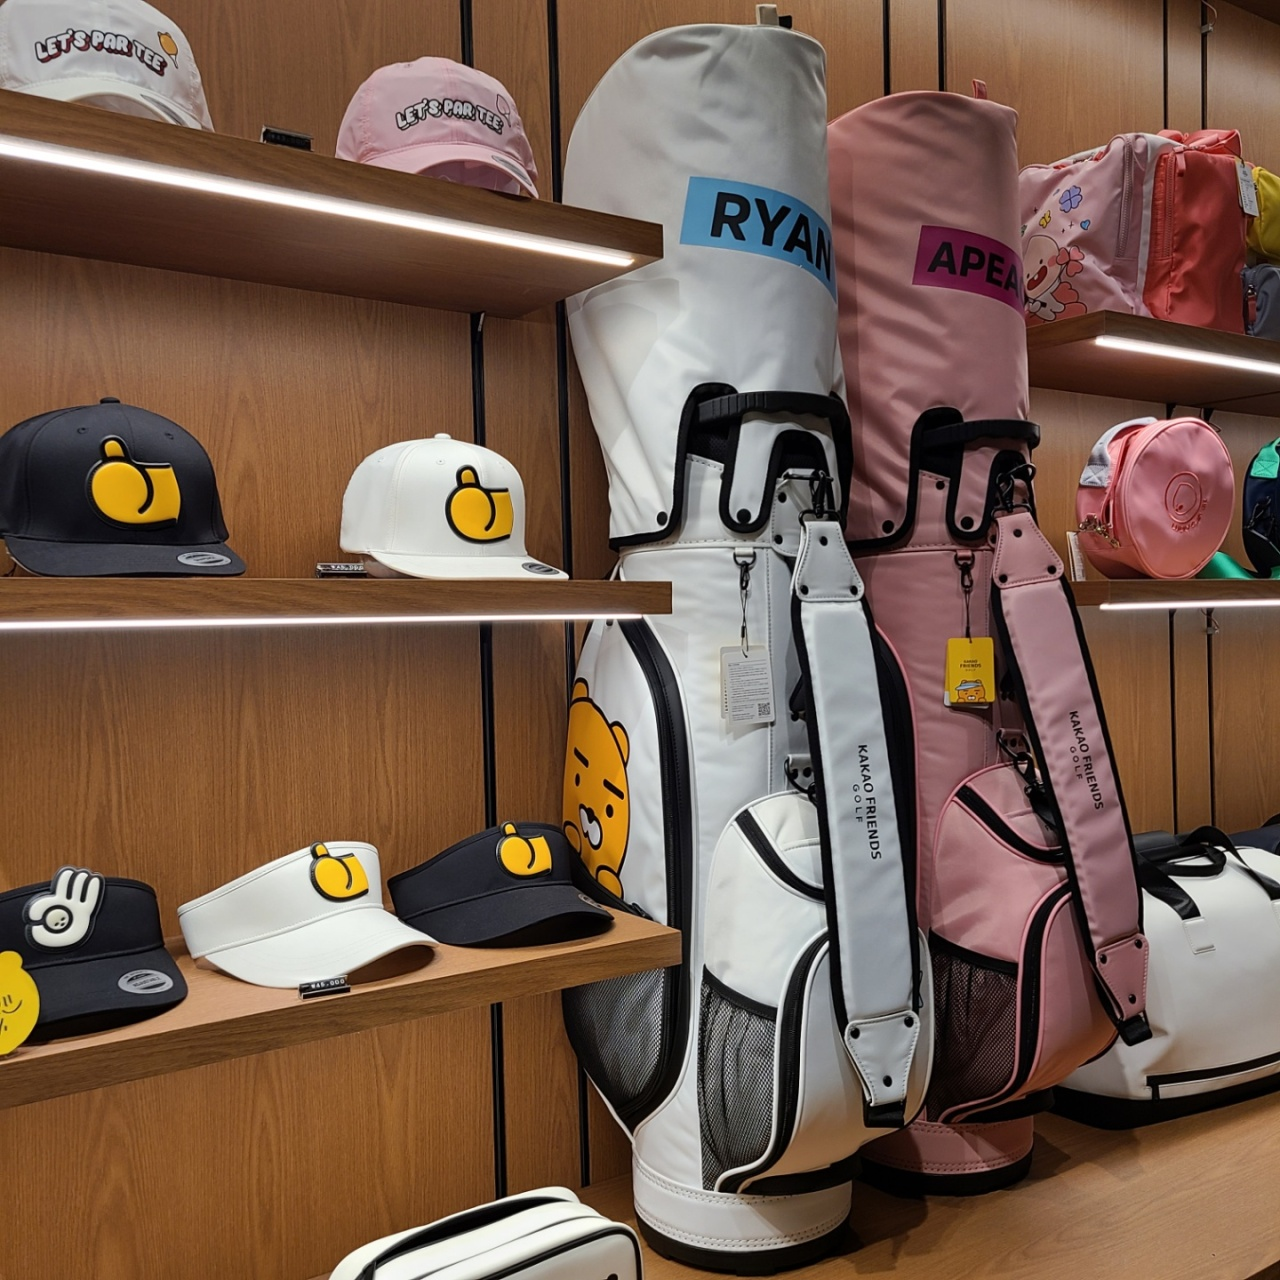 """Golf bags and golf caps designed with Kakao friend's characters are displayed on the shelves of the equipment shop of Kakao VX's """"Friend's Screen"""" screen golf zone in Pangyo, Gyeonggi Province. (The Korea Herald/Kang Jae-eun)"""